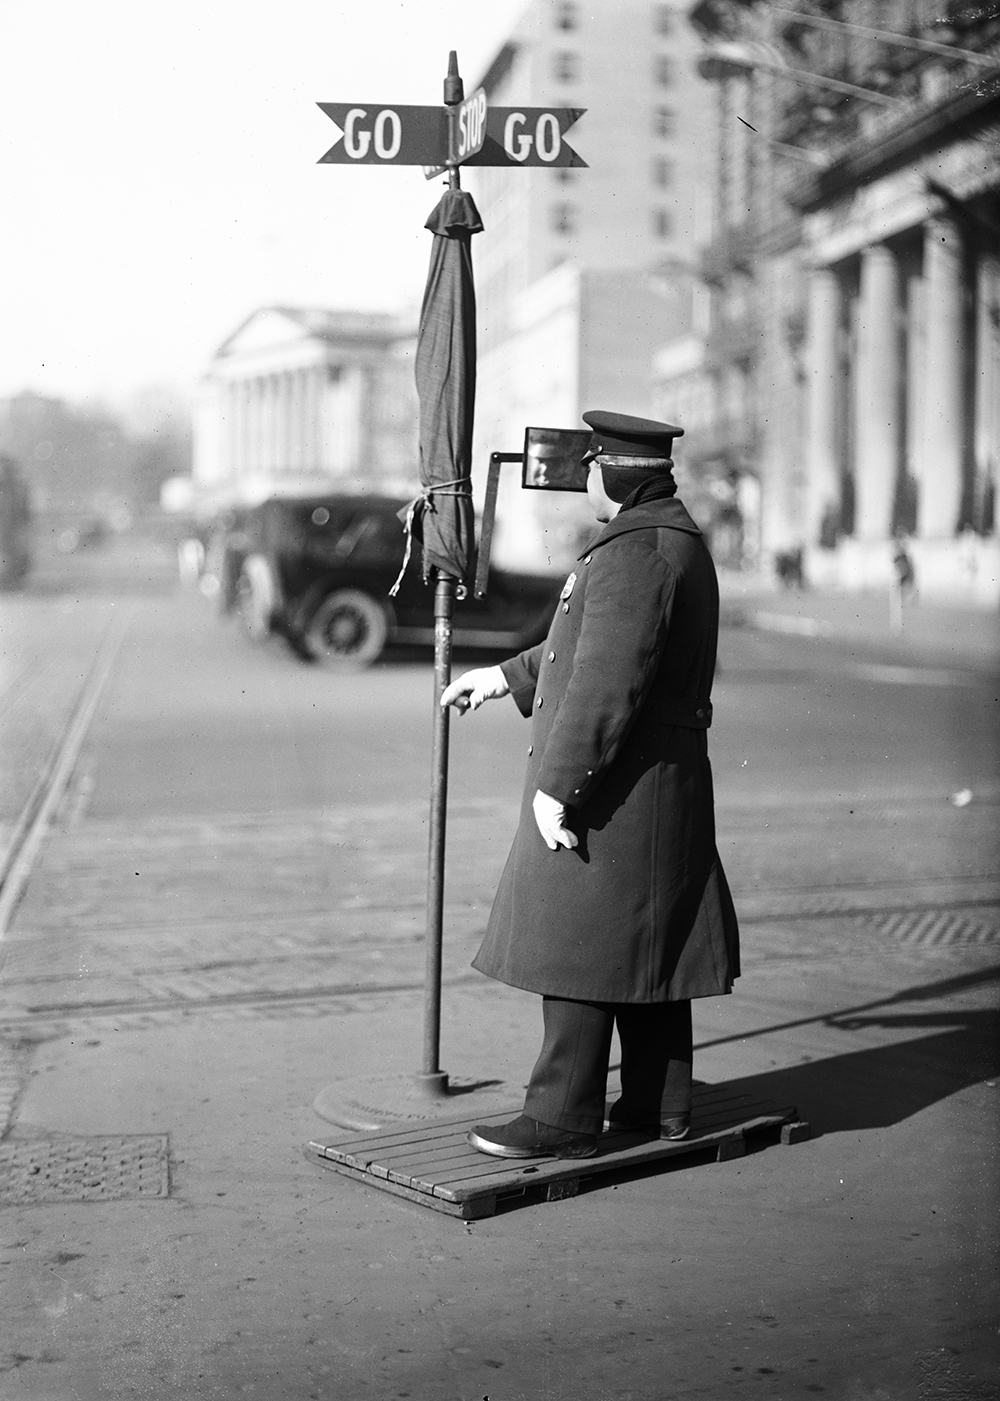 Traffic officer, Washington, DC, c. 1915. Photograph by Harris & Ewing. Library of Congress, Prints and Photographs Division.